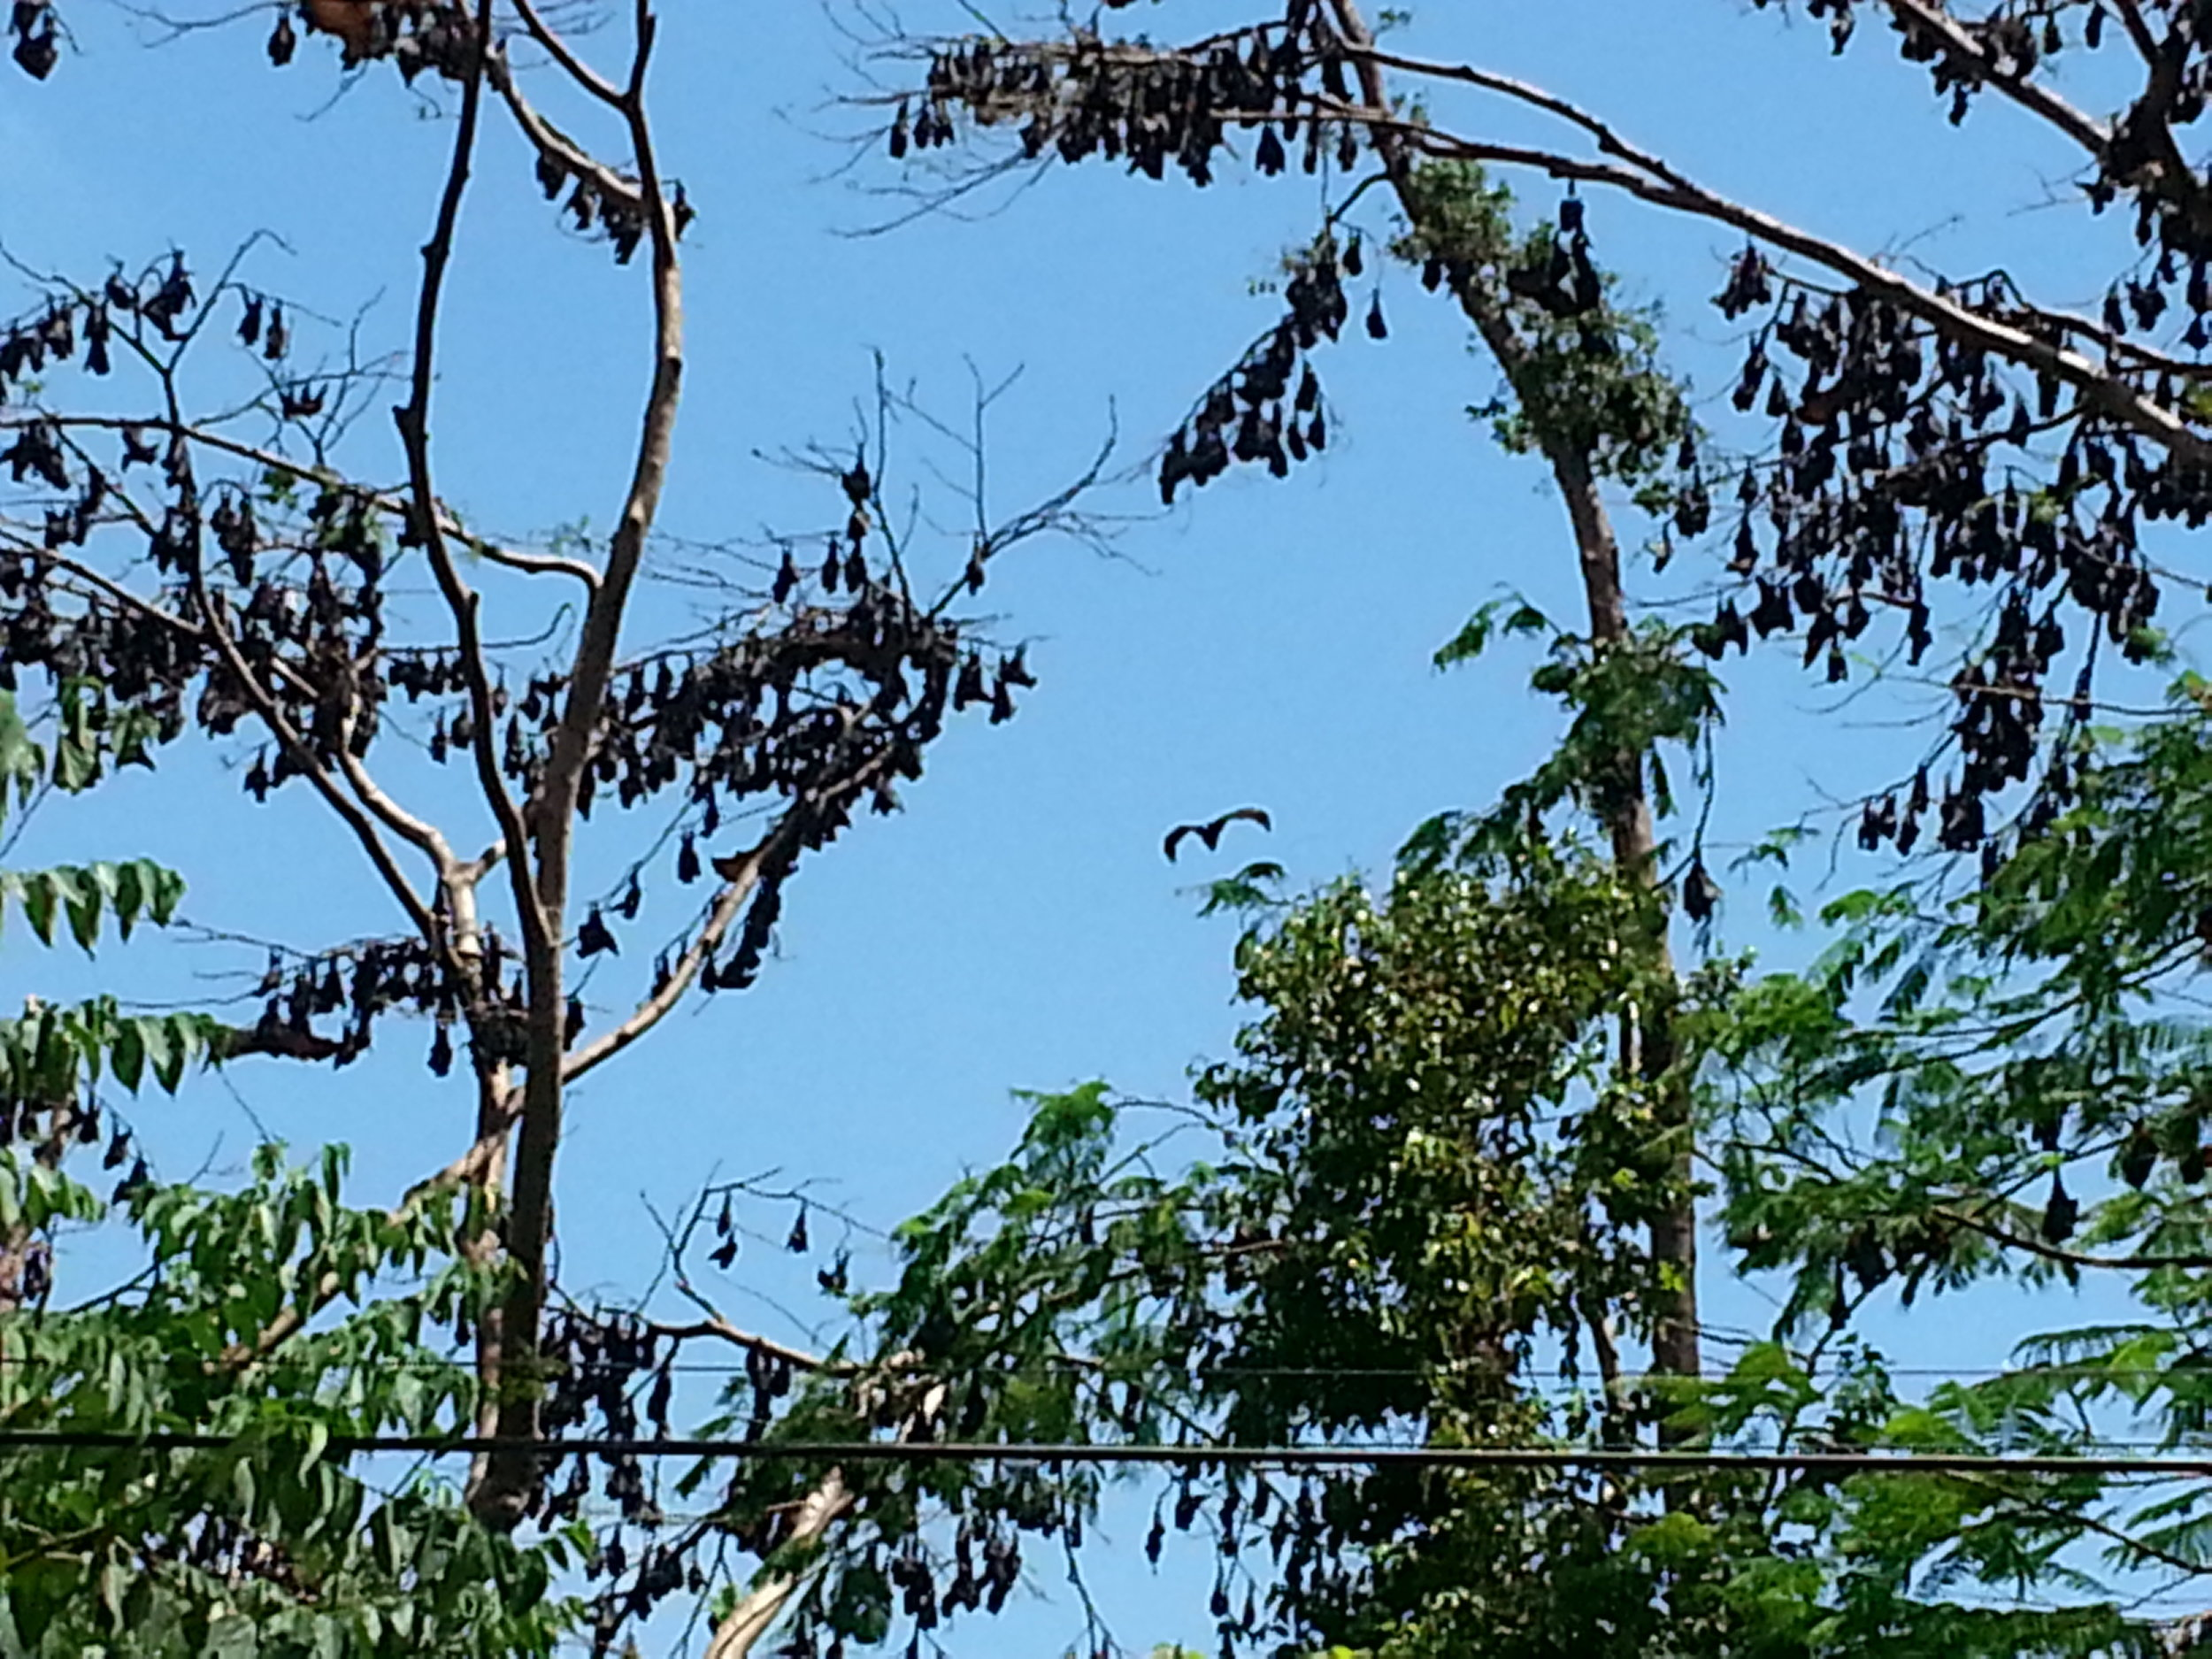 If you ever venture to Subic Bay you will have a hard time not seeing monkeys or these fruit bats, they are everywhere!